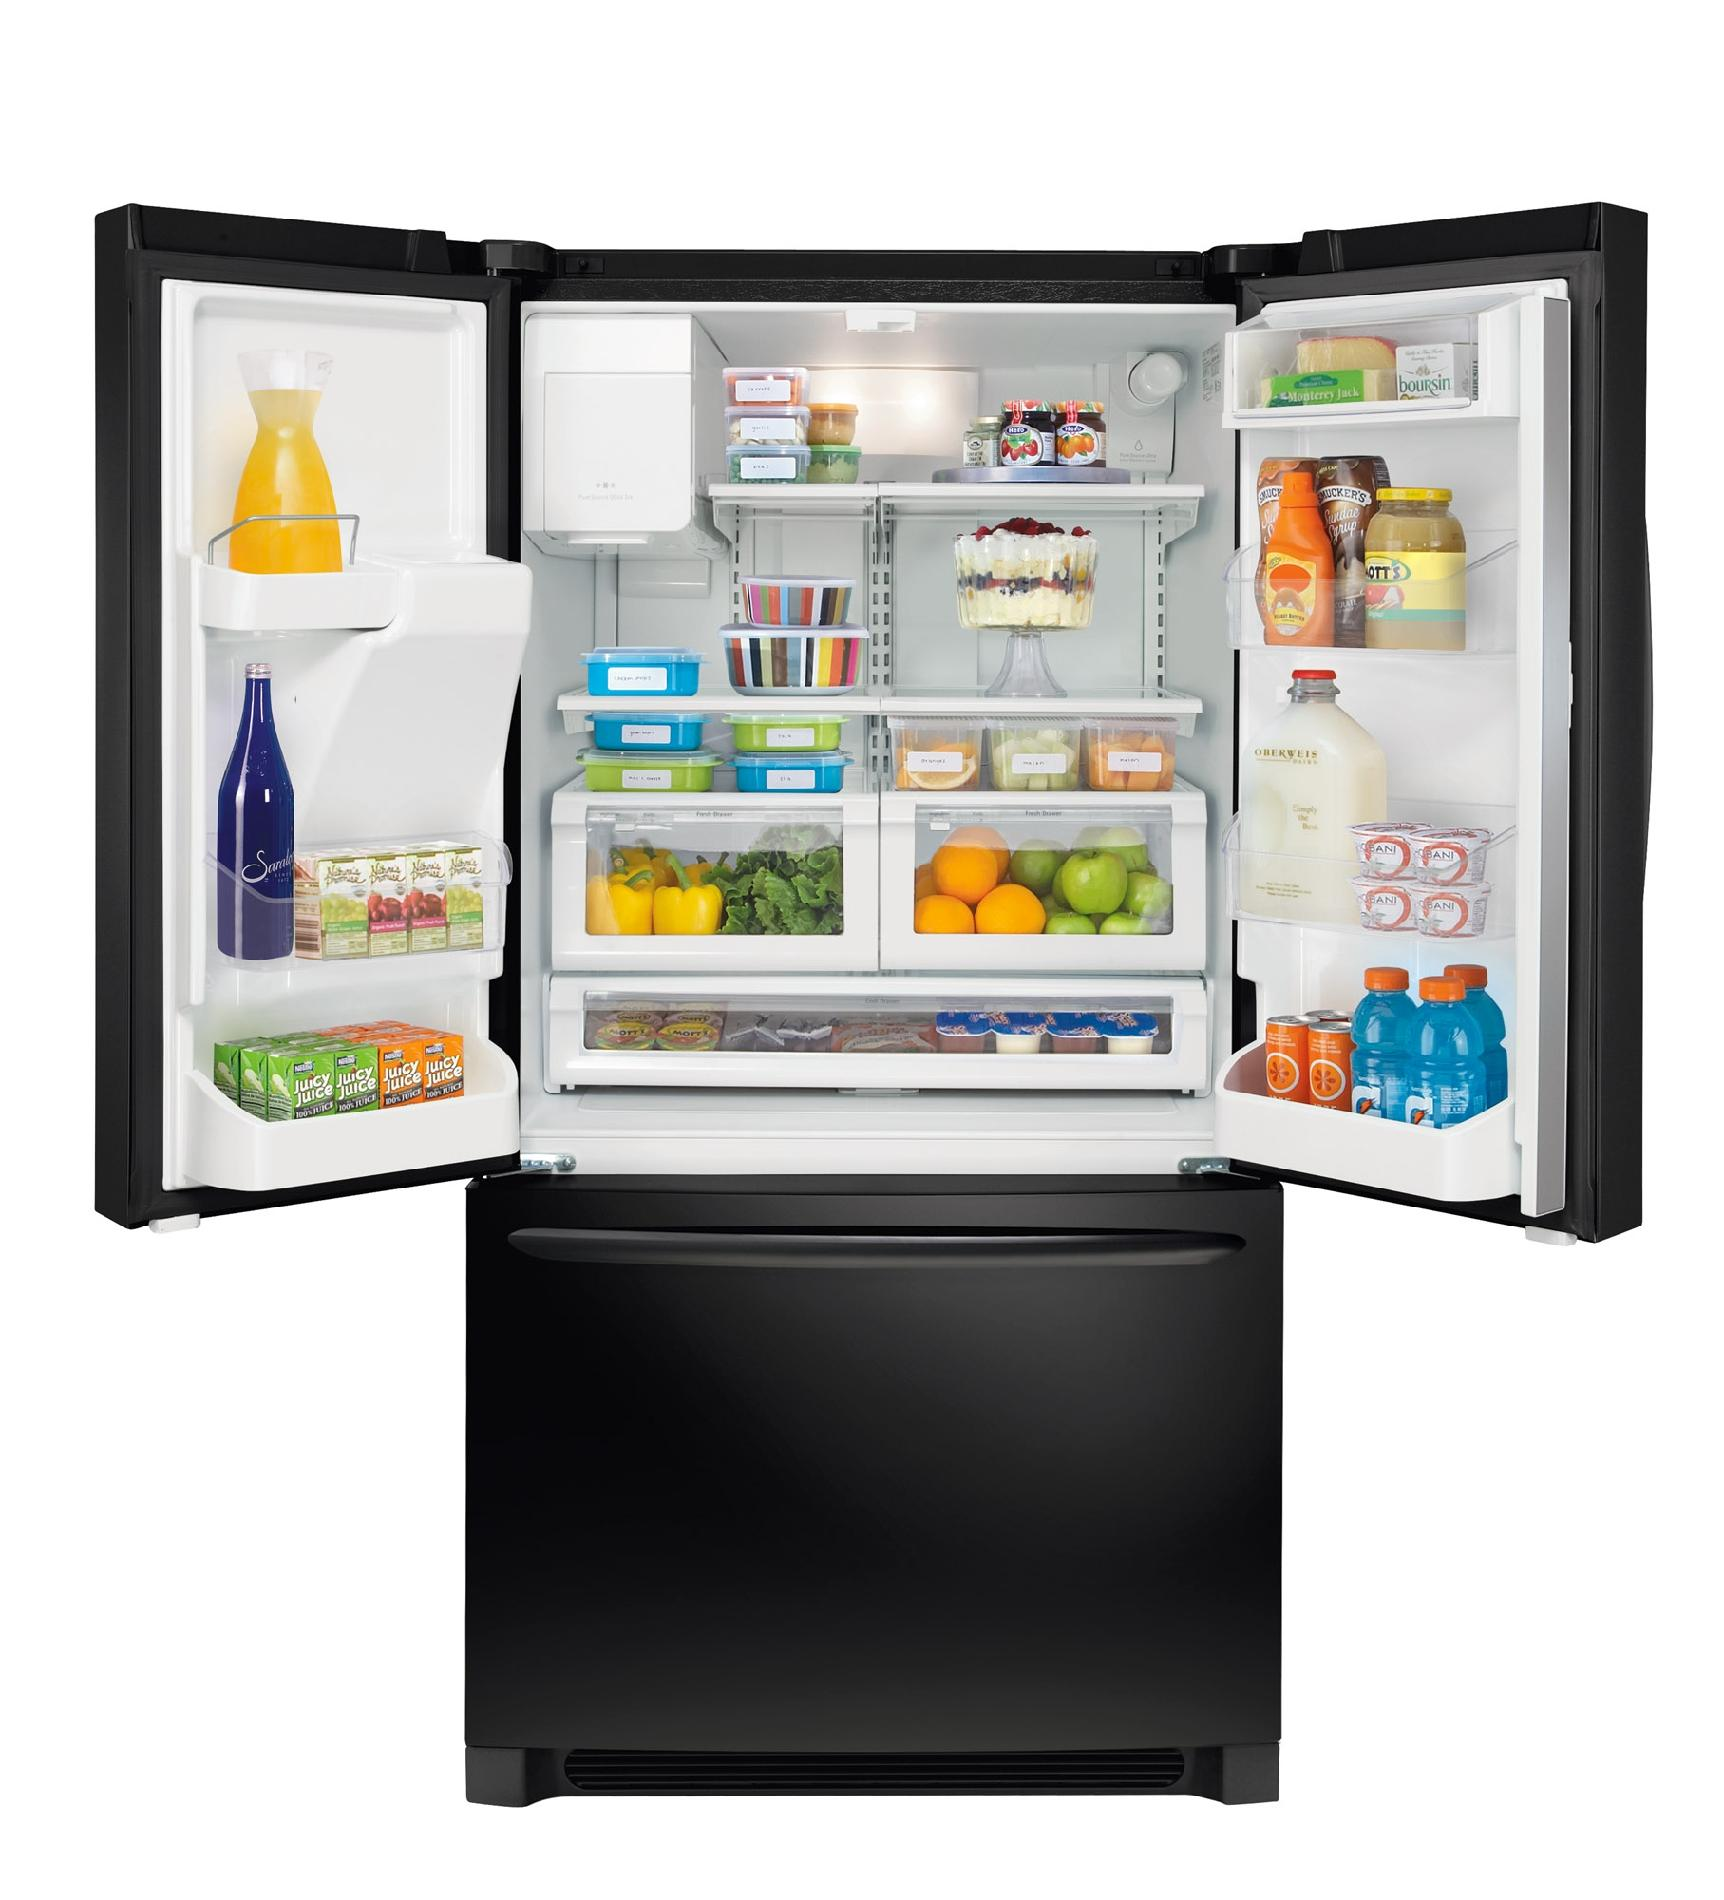 FRIGIDAIRE  26.7 cu. ft.25.8 cu. ft. French-Door Bottom-Freezer Refrigerator Blackk